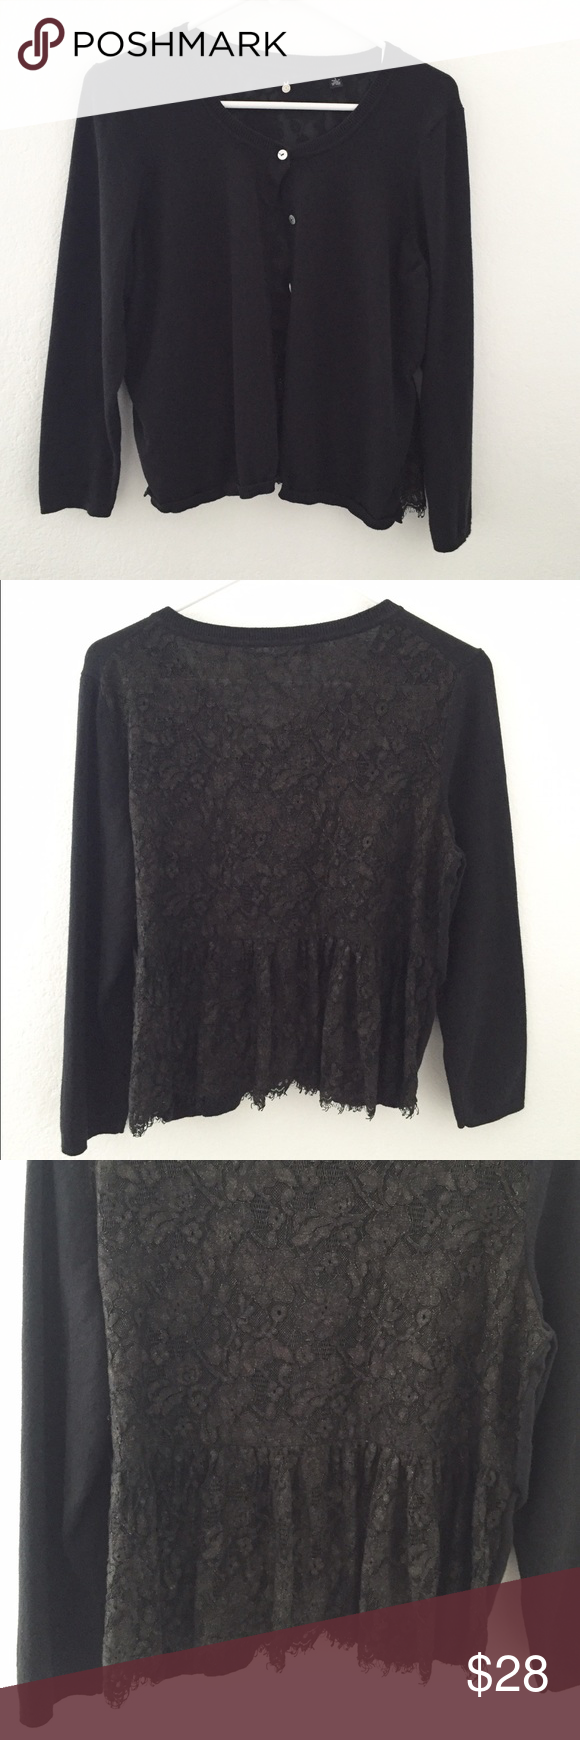 ANTHROPOLOGIE black cardigan, back lace detail Adorable black ...